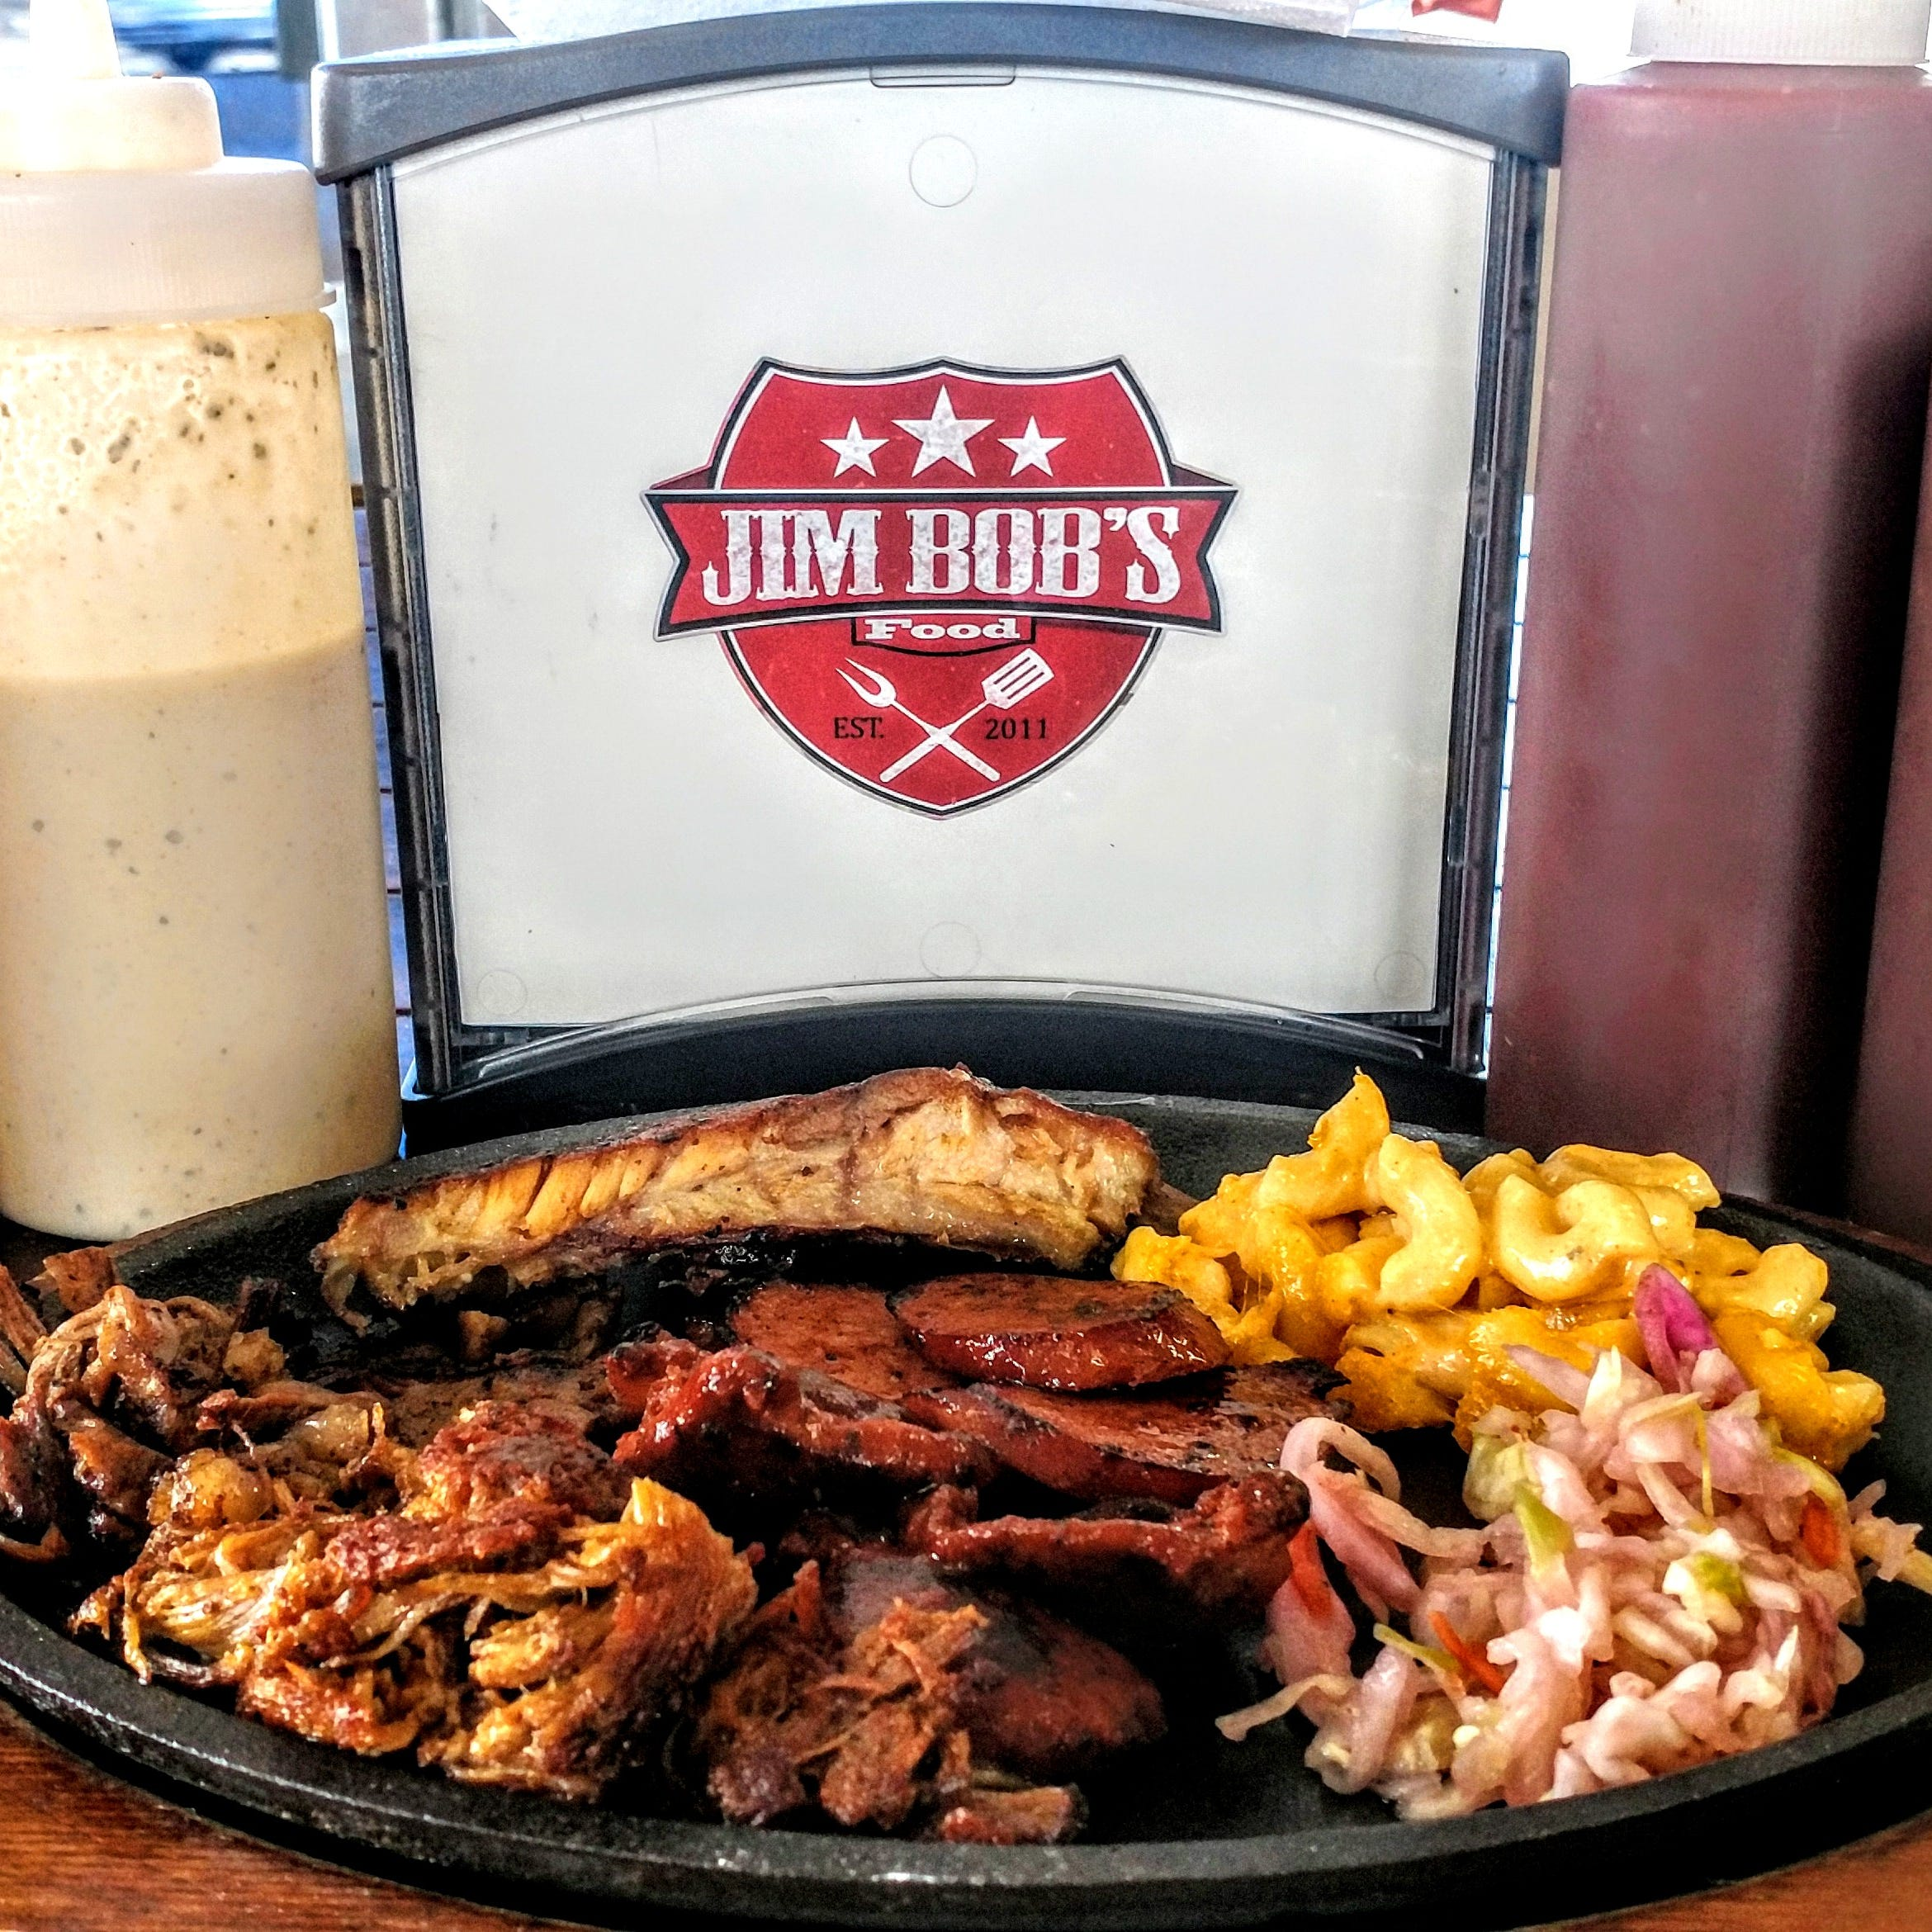 Jim Bob's Food a new addition to BBQ restaurants in Las Cruces